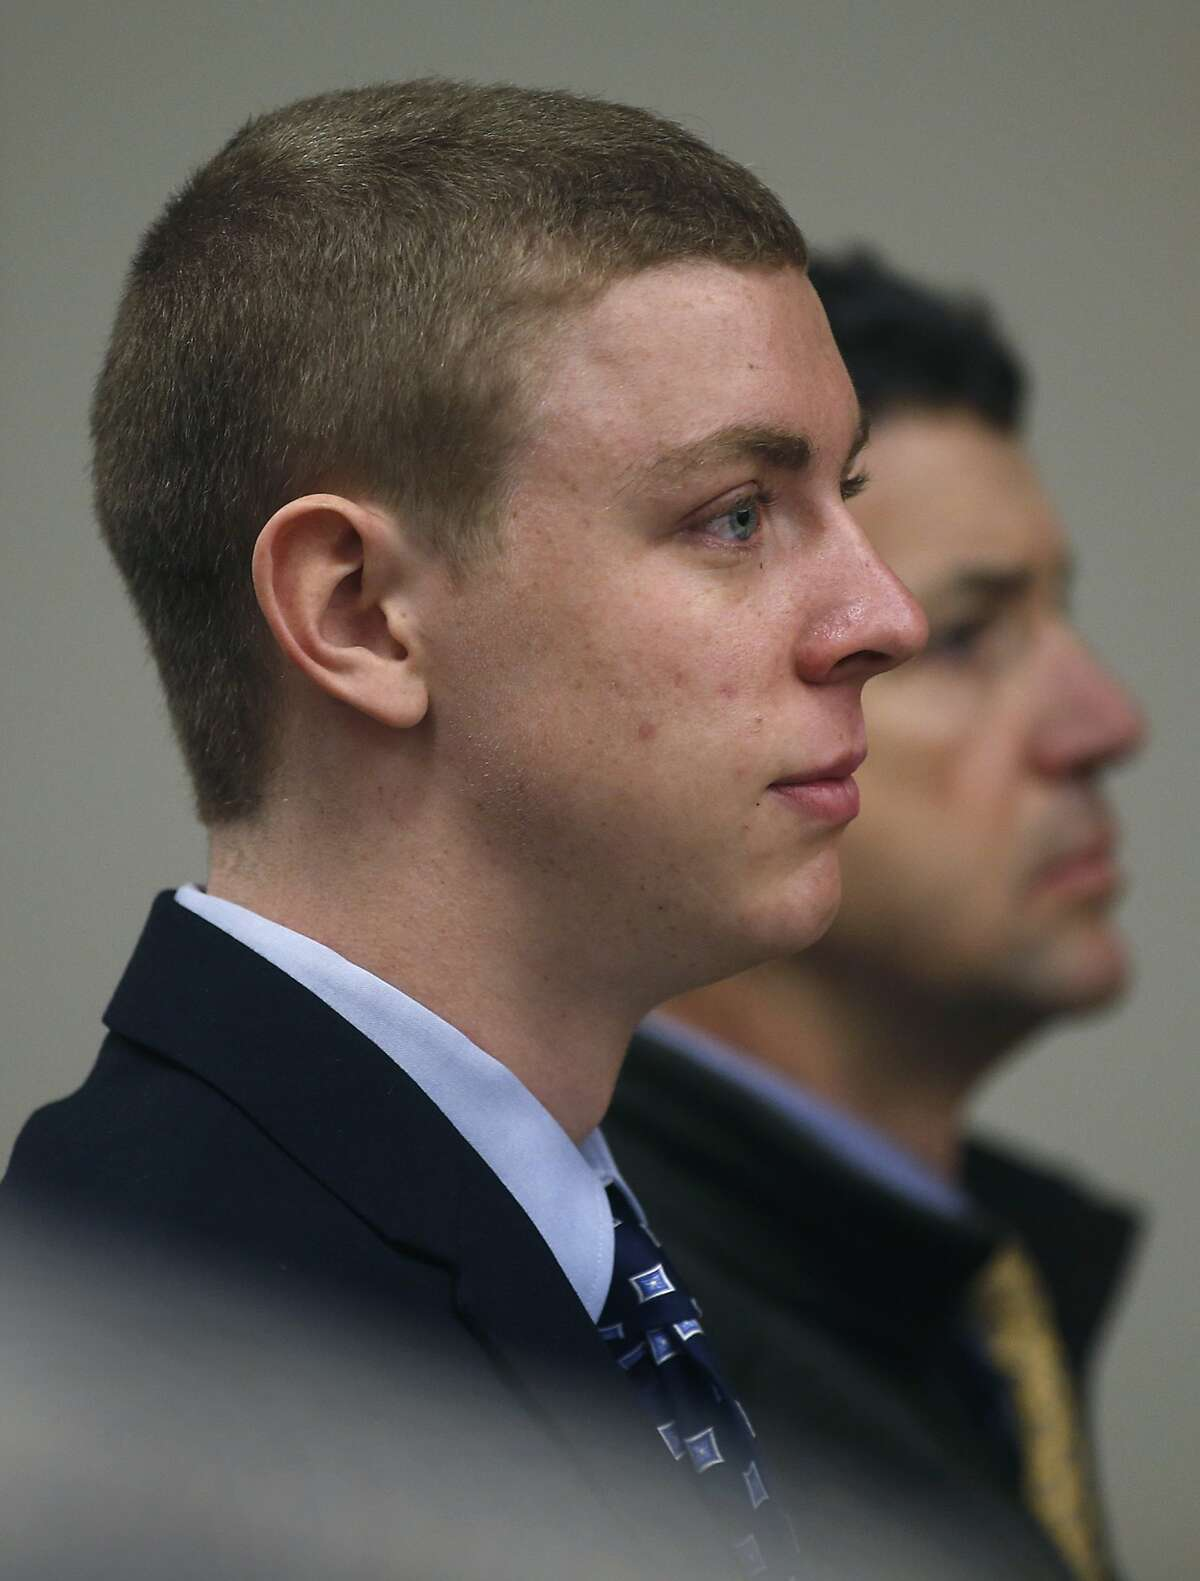 In this Feb. 2, 2015 file photo, accompanied by his father Dan Turner, right, former Stanford swimmer Brock Turner appears in a Palo Alto, Calif., courtroom.